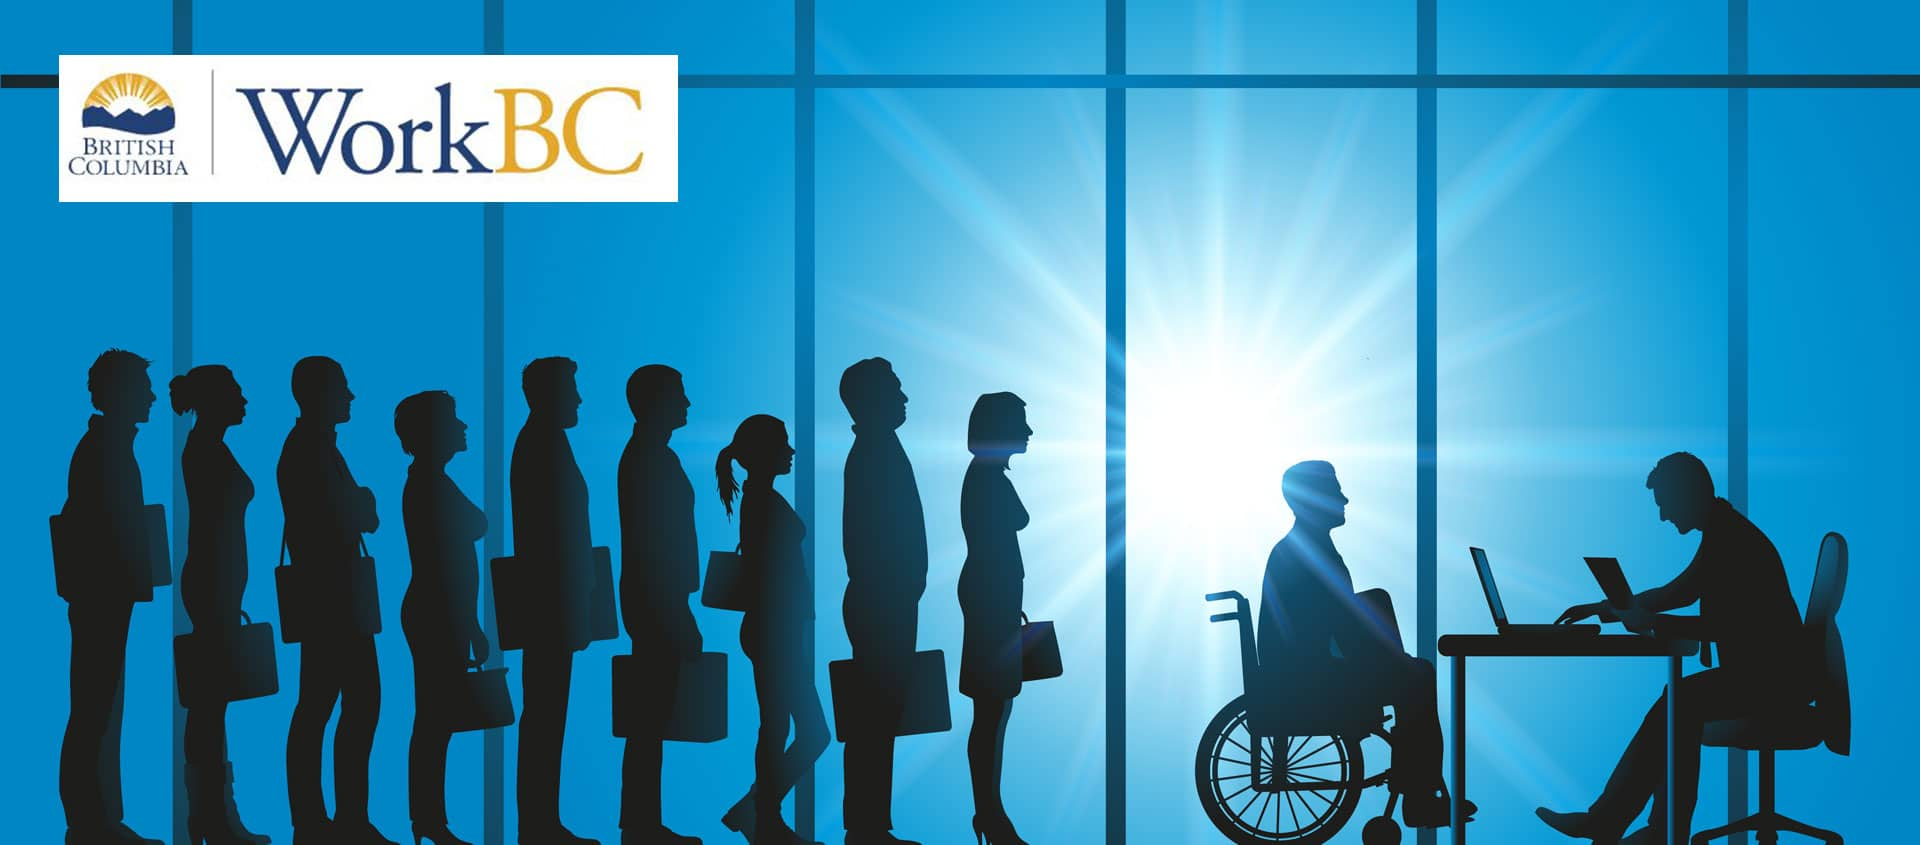 WorkBC Logo on a photo of office workers silhouettes